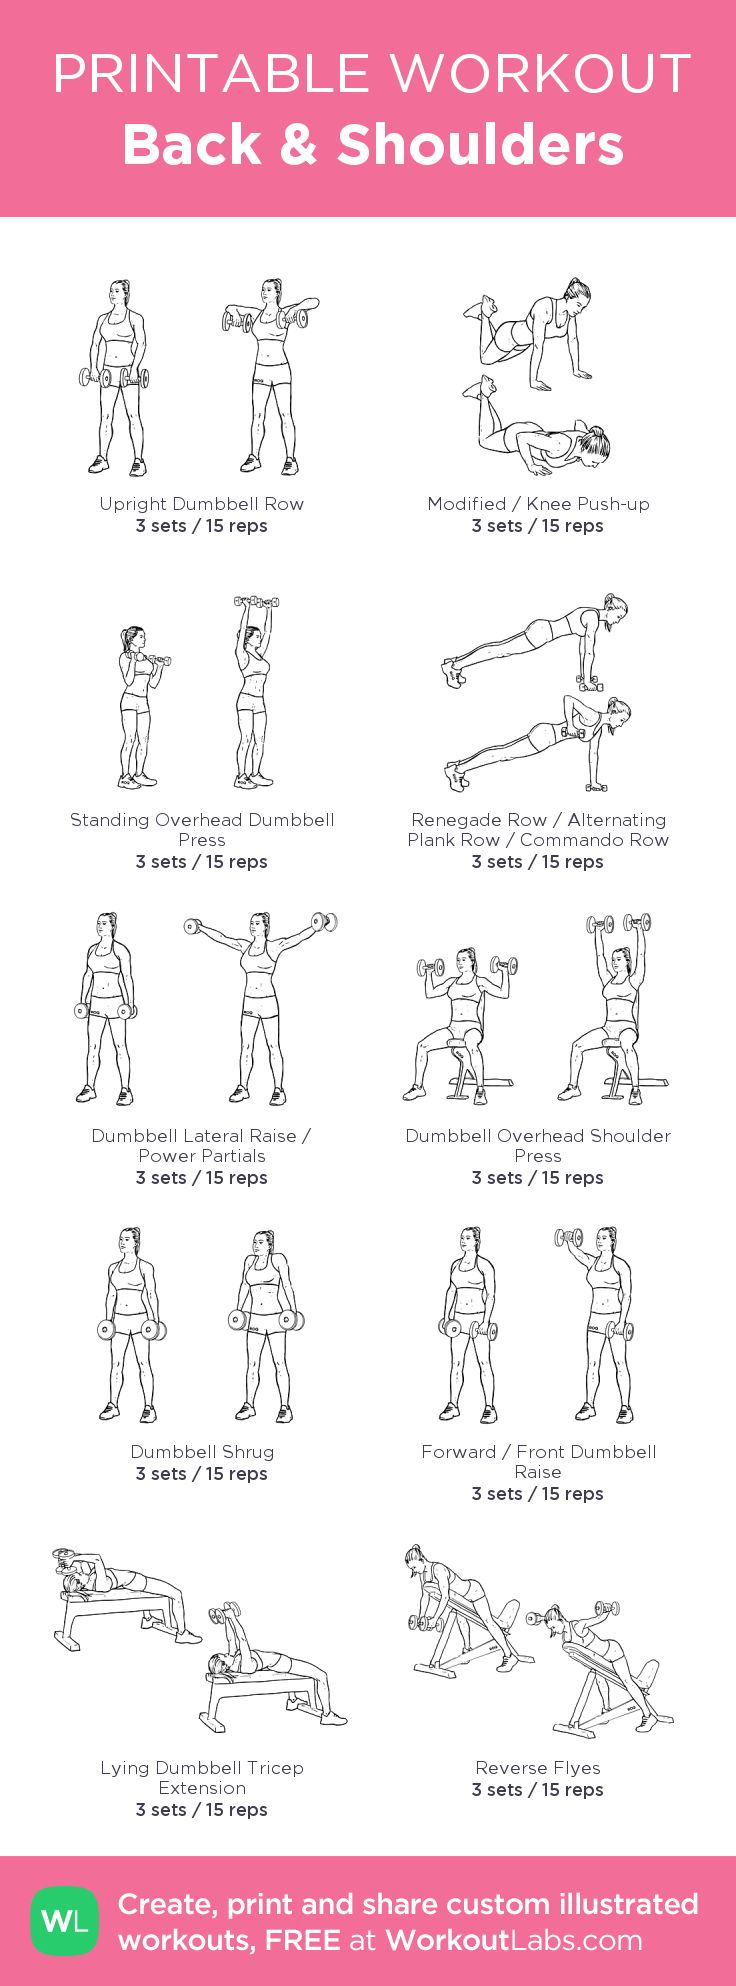 Fitness Motivation : Back & Shoulders: my visual workout created at ...